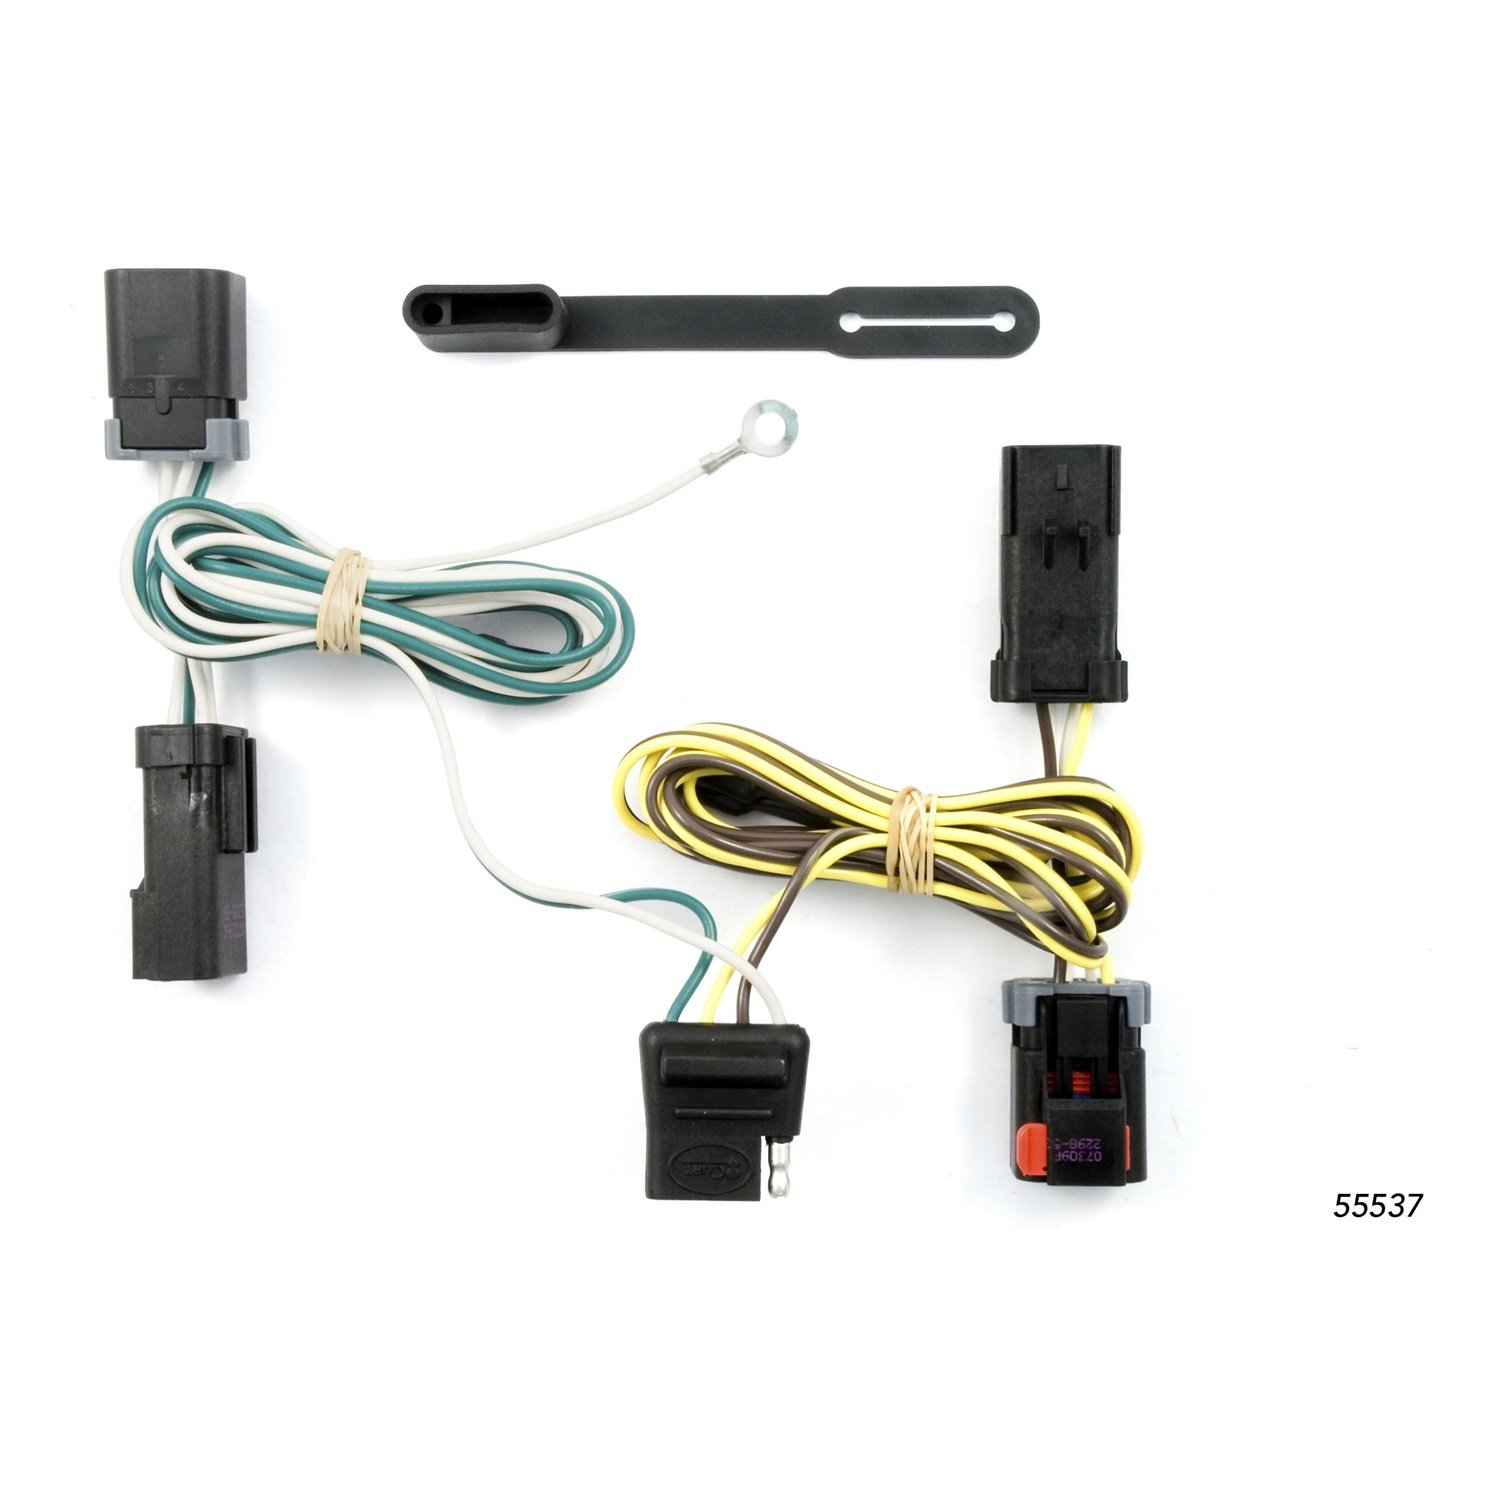 61jvODZfNZL._SL1500_ amazon com curt 55537 custom wiring harness automotive 94 Caravan at gsmportal.co